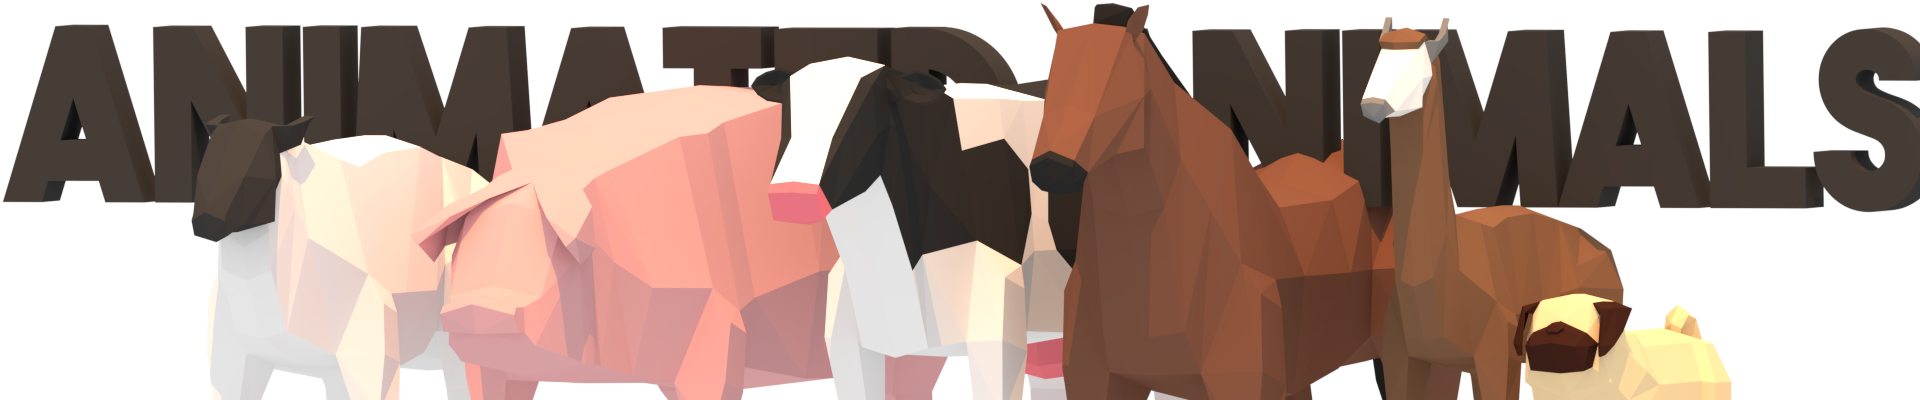 LowPoly Animated Animals